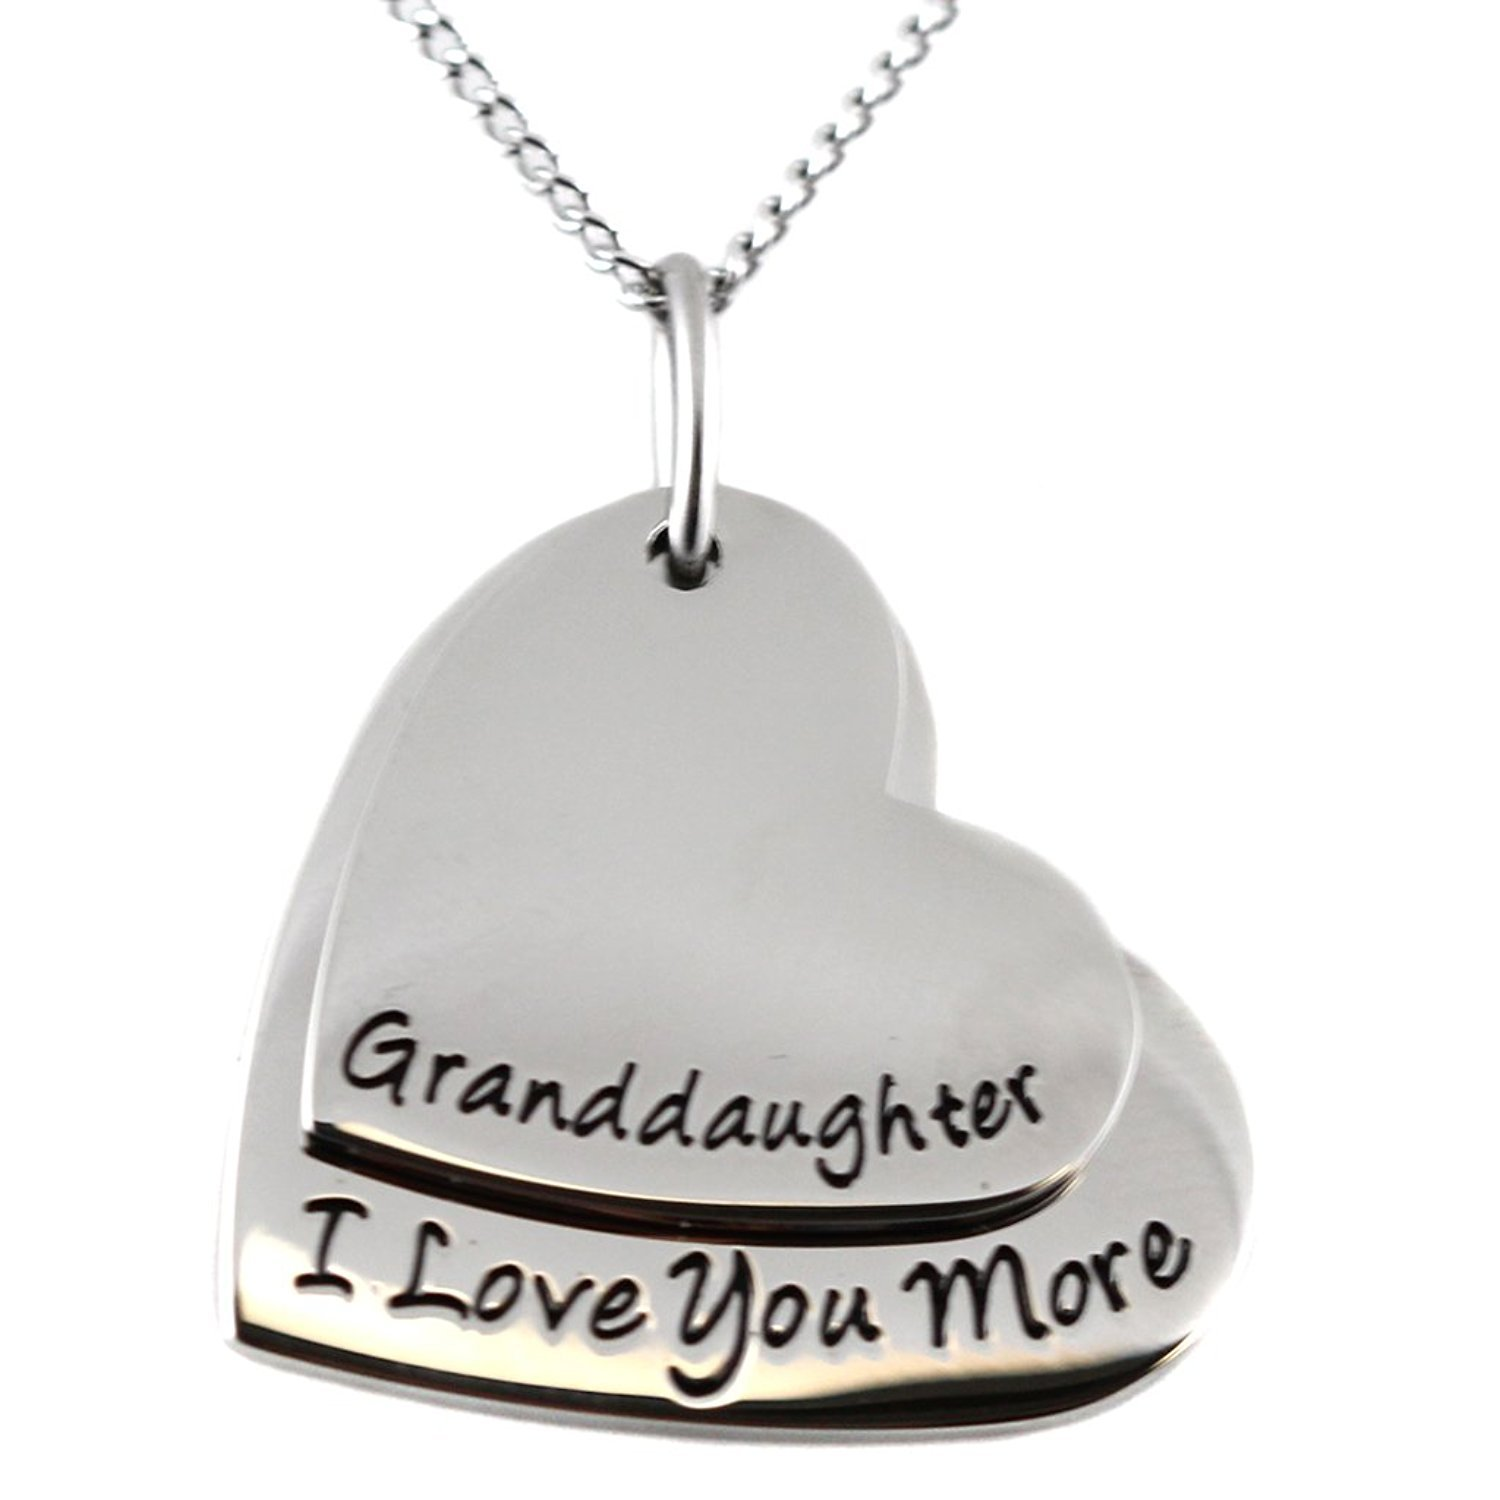 'Granddaughter, I Love You More' Pendant Necklace